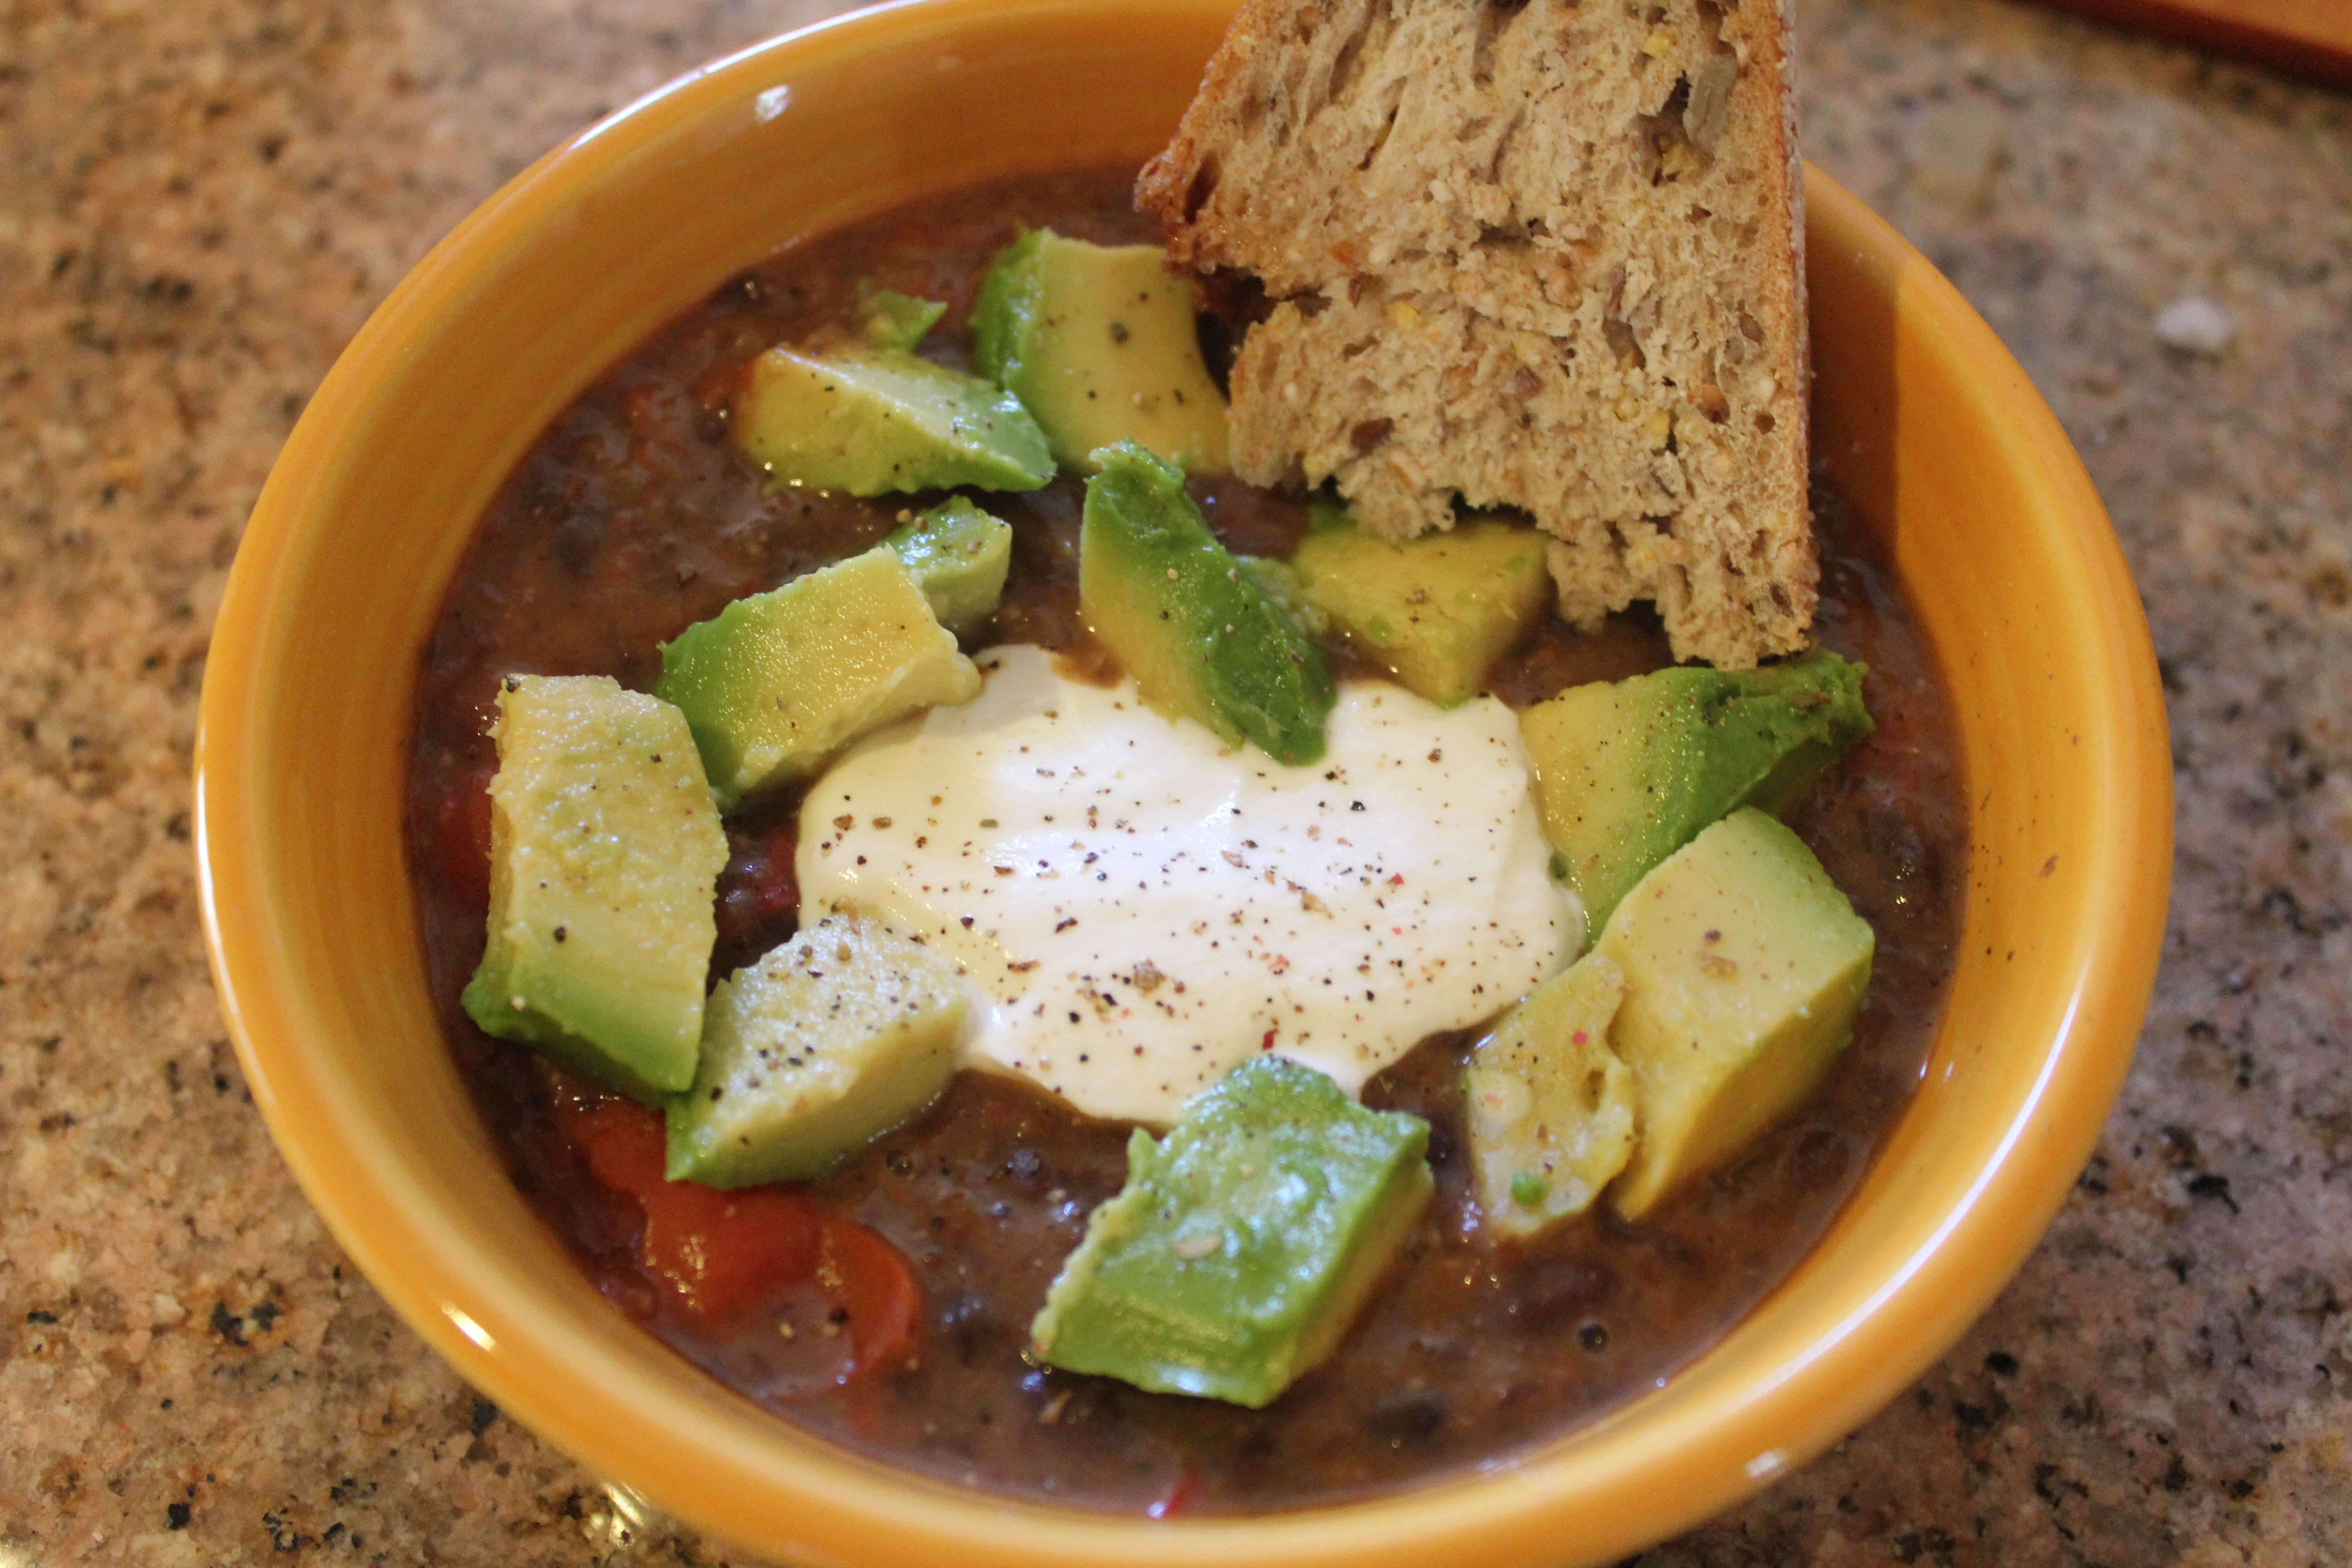 Costa rica black bean soup recipe once of the classic food of costa rica black bean soup recipe once of the classic food of costa rica this forumfinder Choice Image